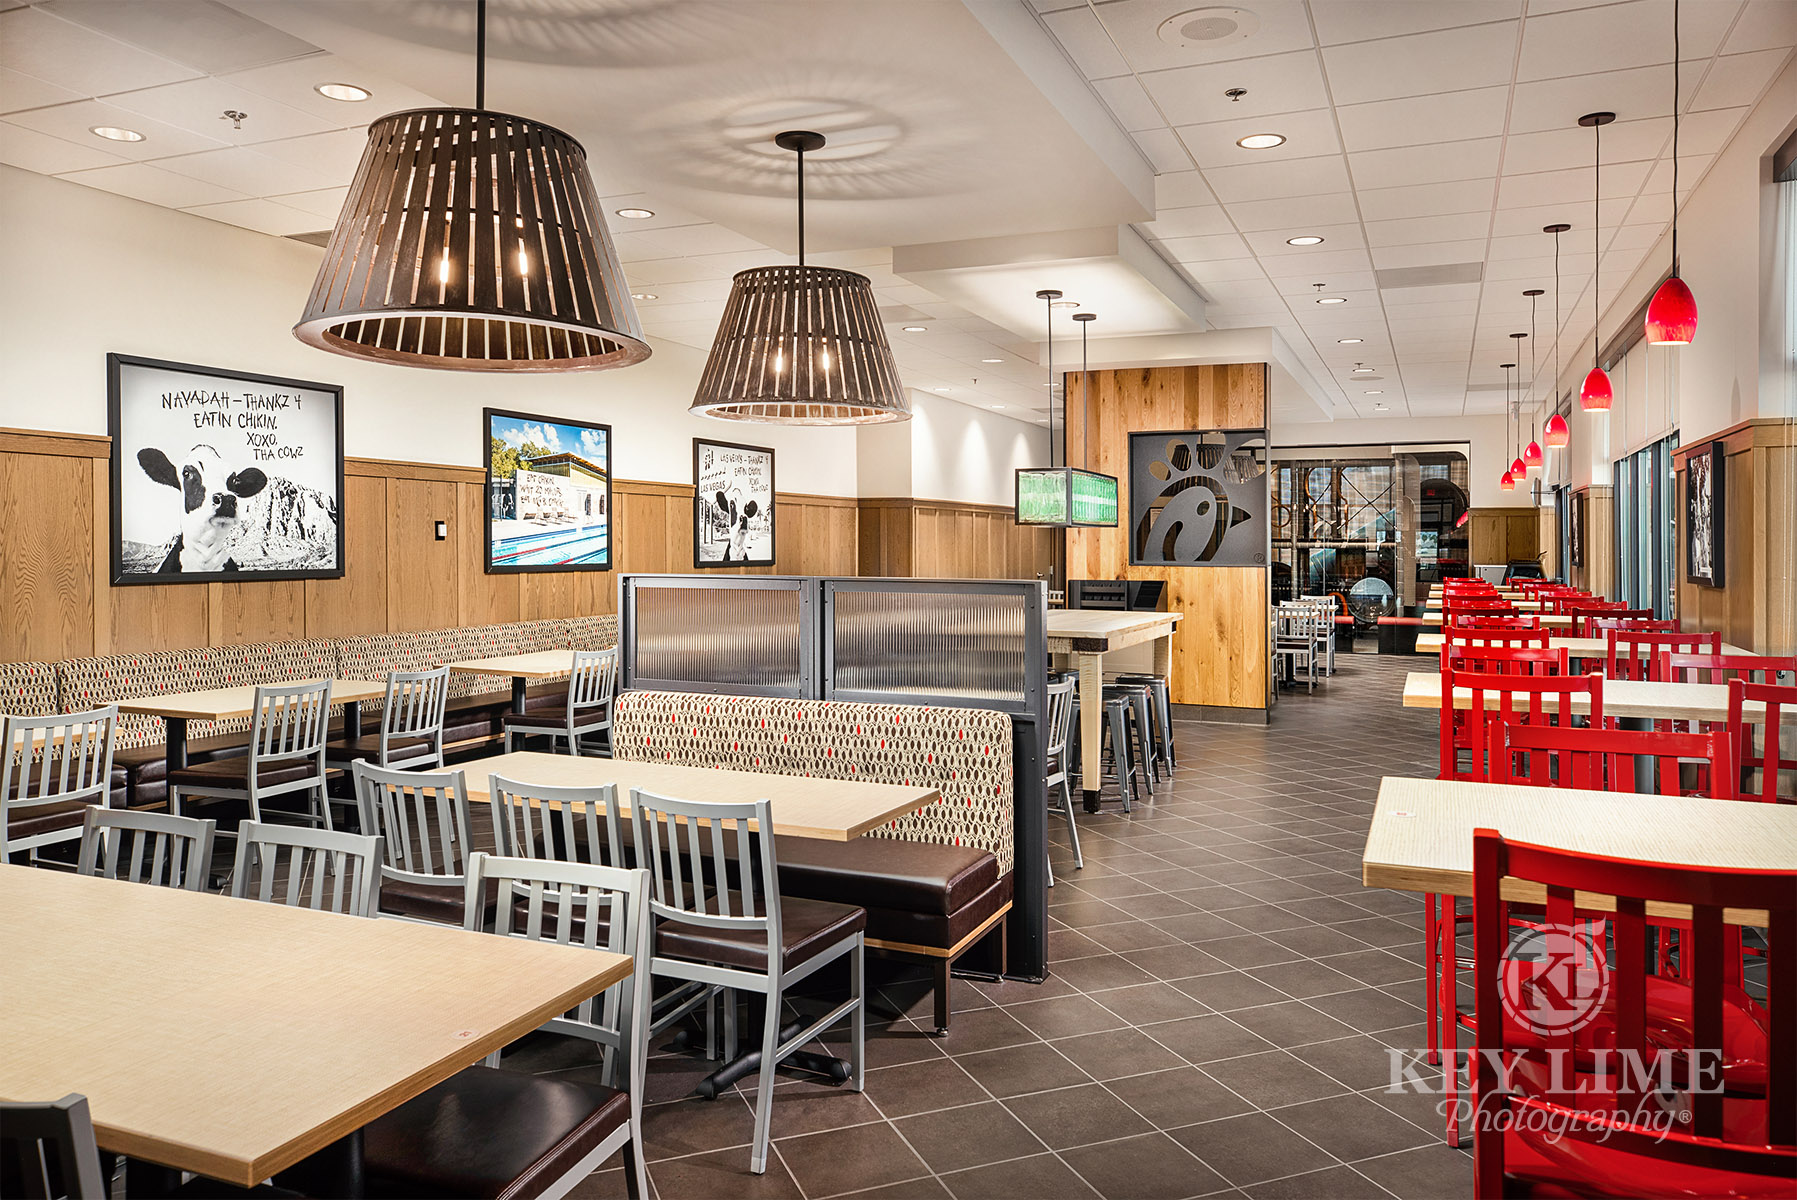 Architecture photography, las vegas, restaurant construction, dining room, interior